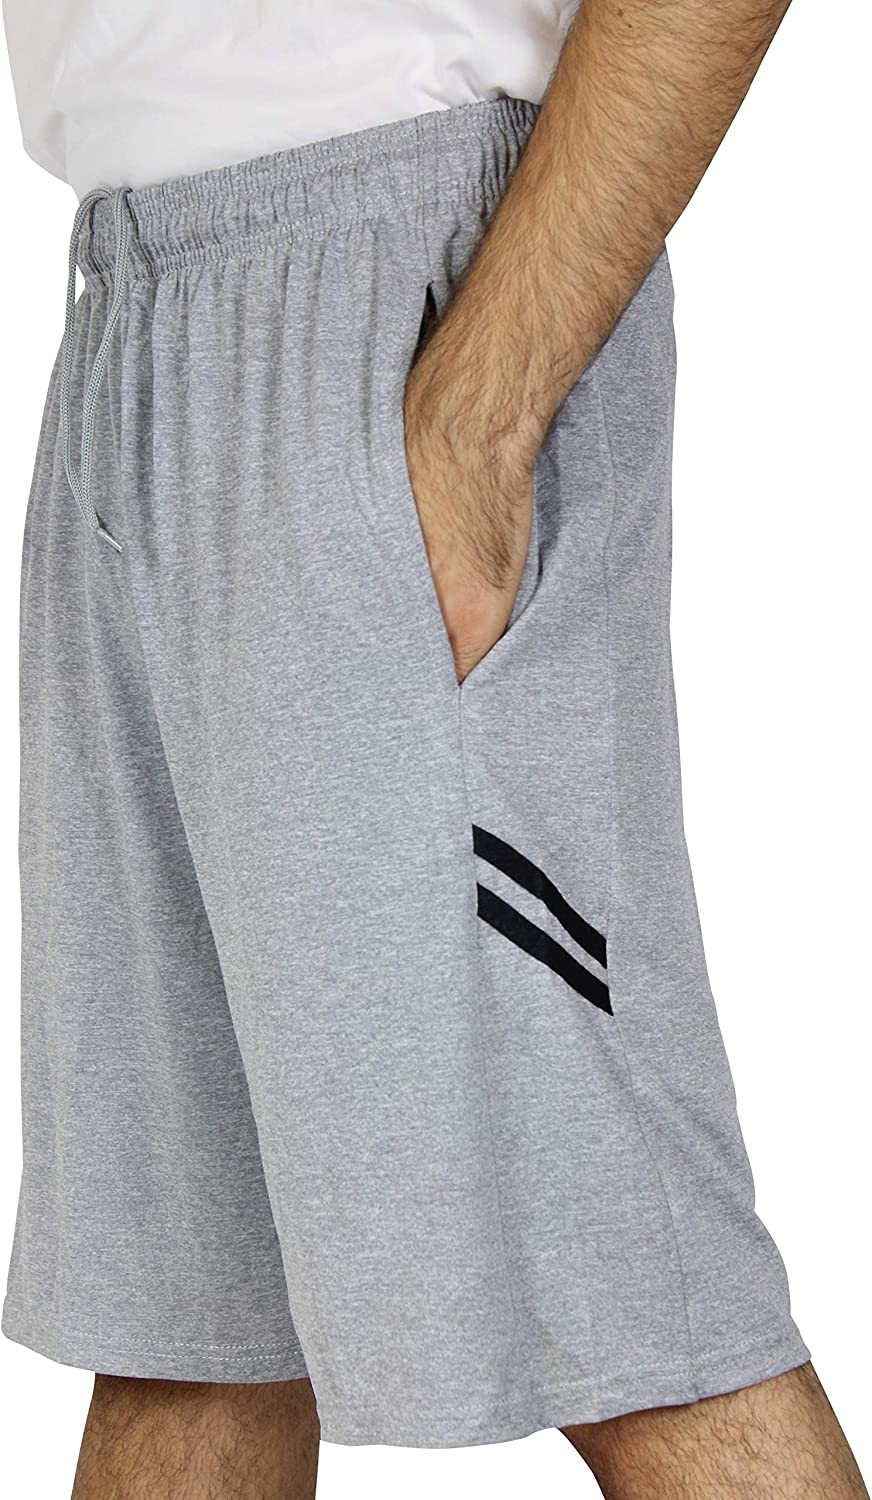 5 Pack:Mens Dry-Fit Sweat Resistant Active Athletic Performance Shorts